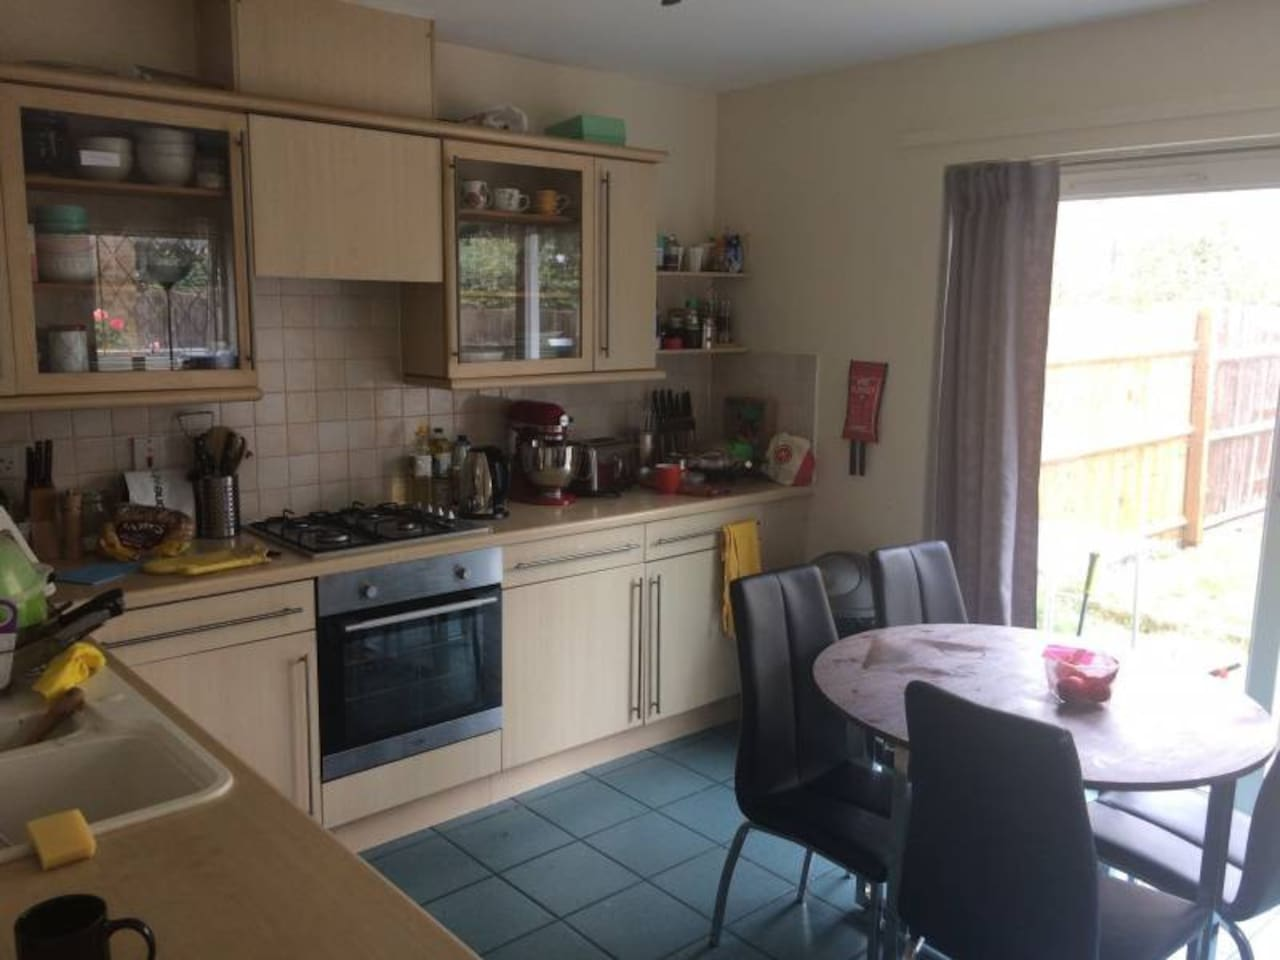 Kitchen with dining table, sofa, dishwasher